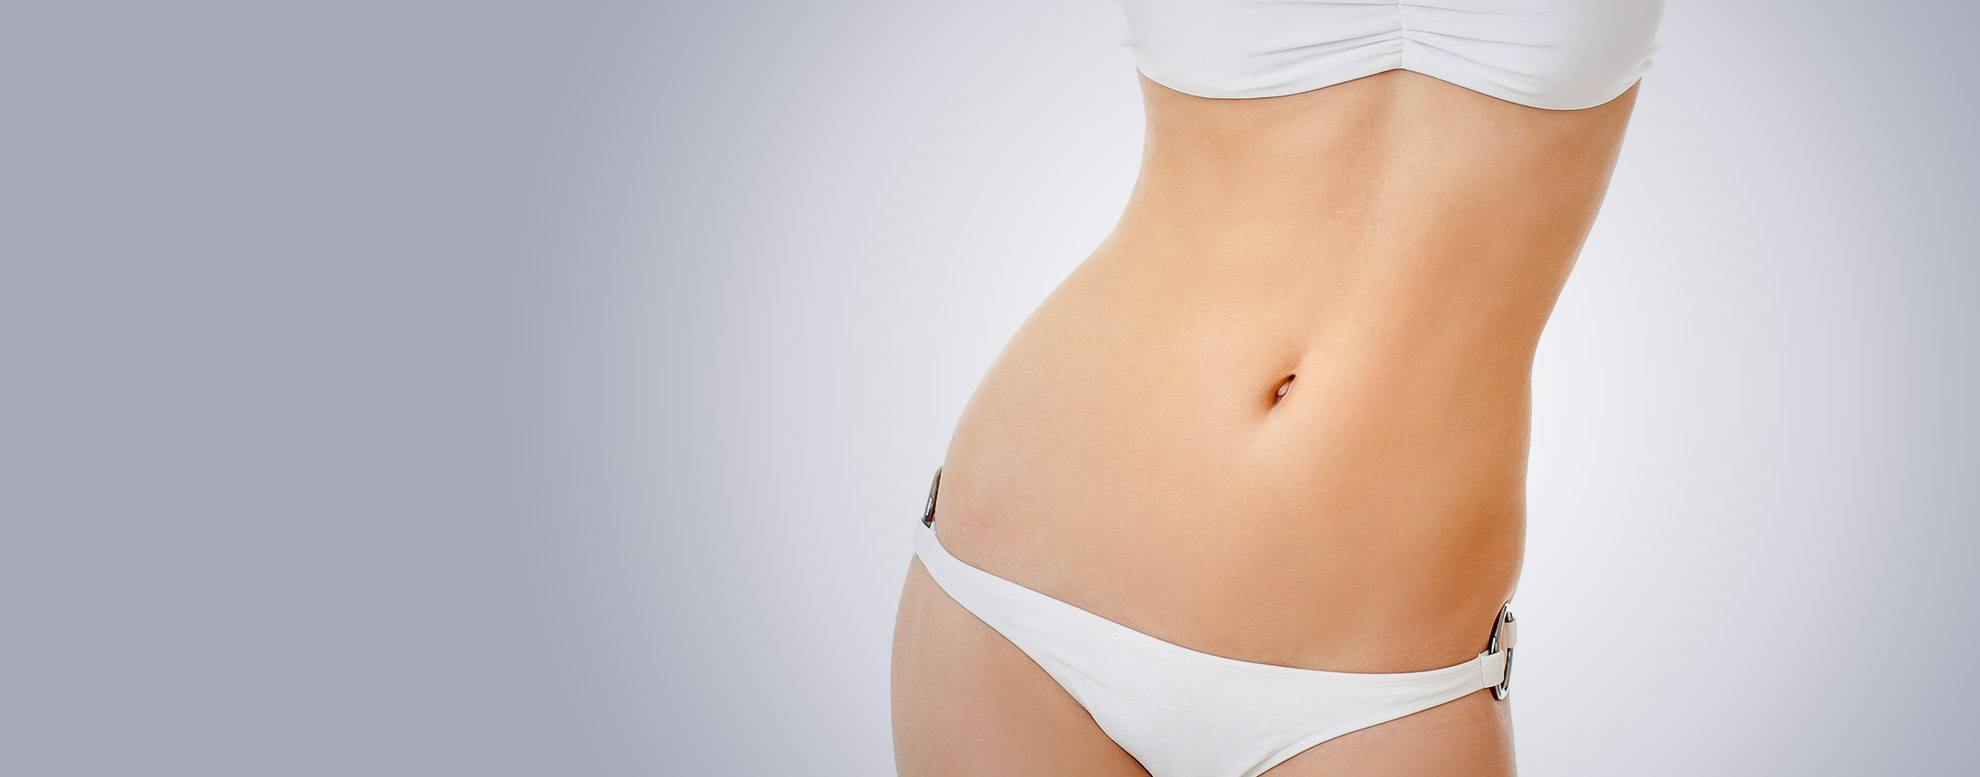 Treat Stubborn Fat and Loose Skin